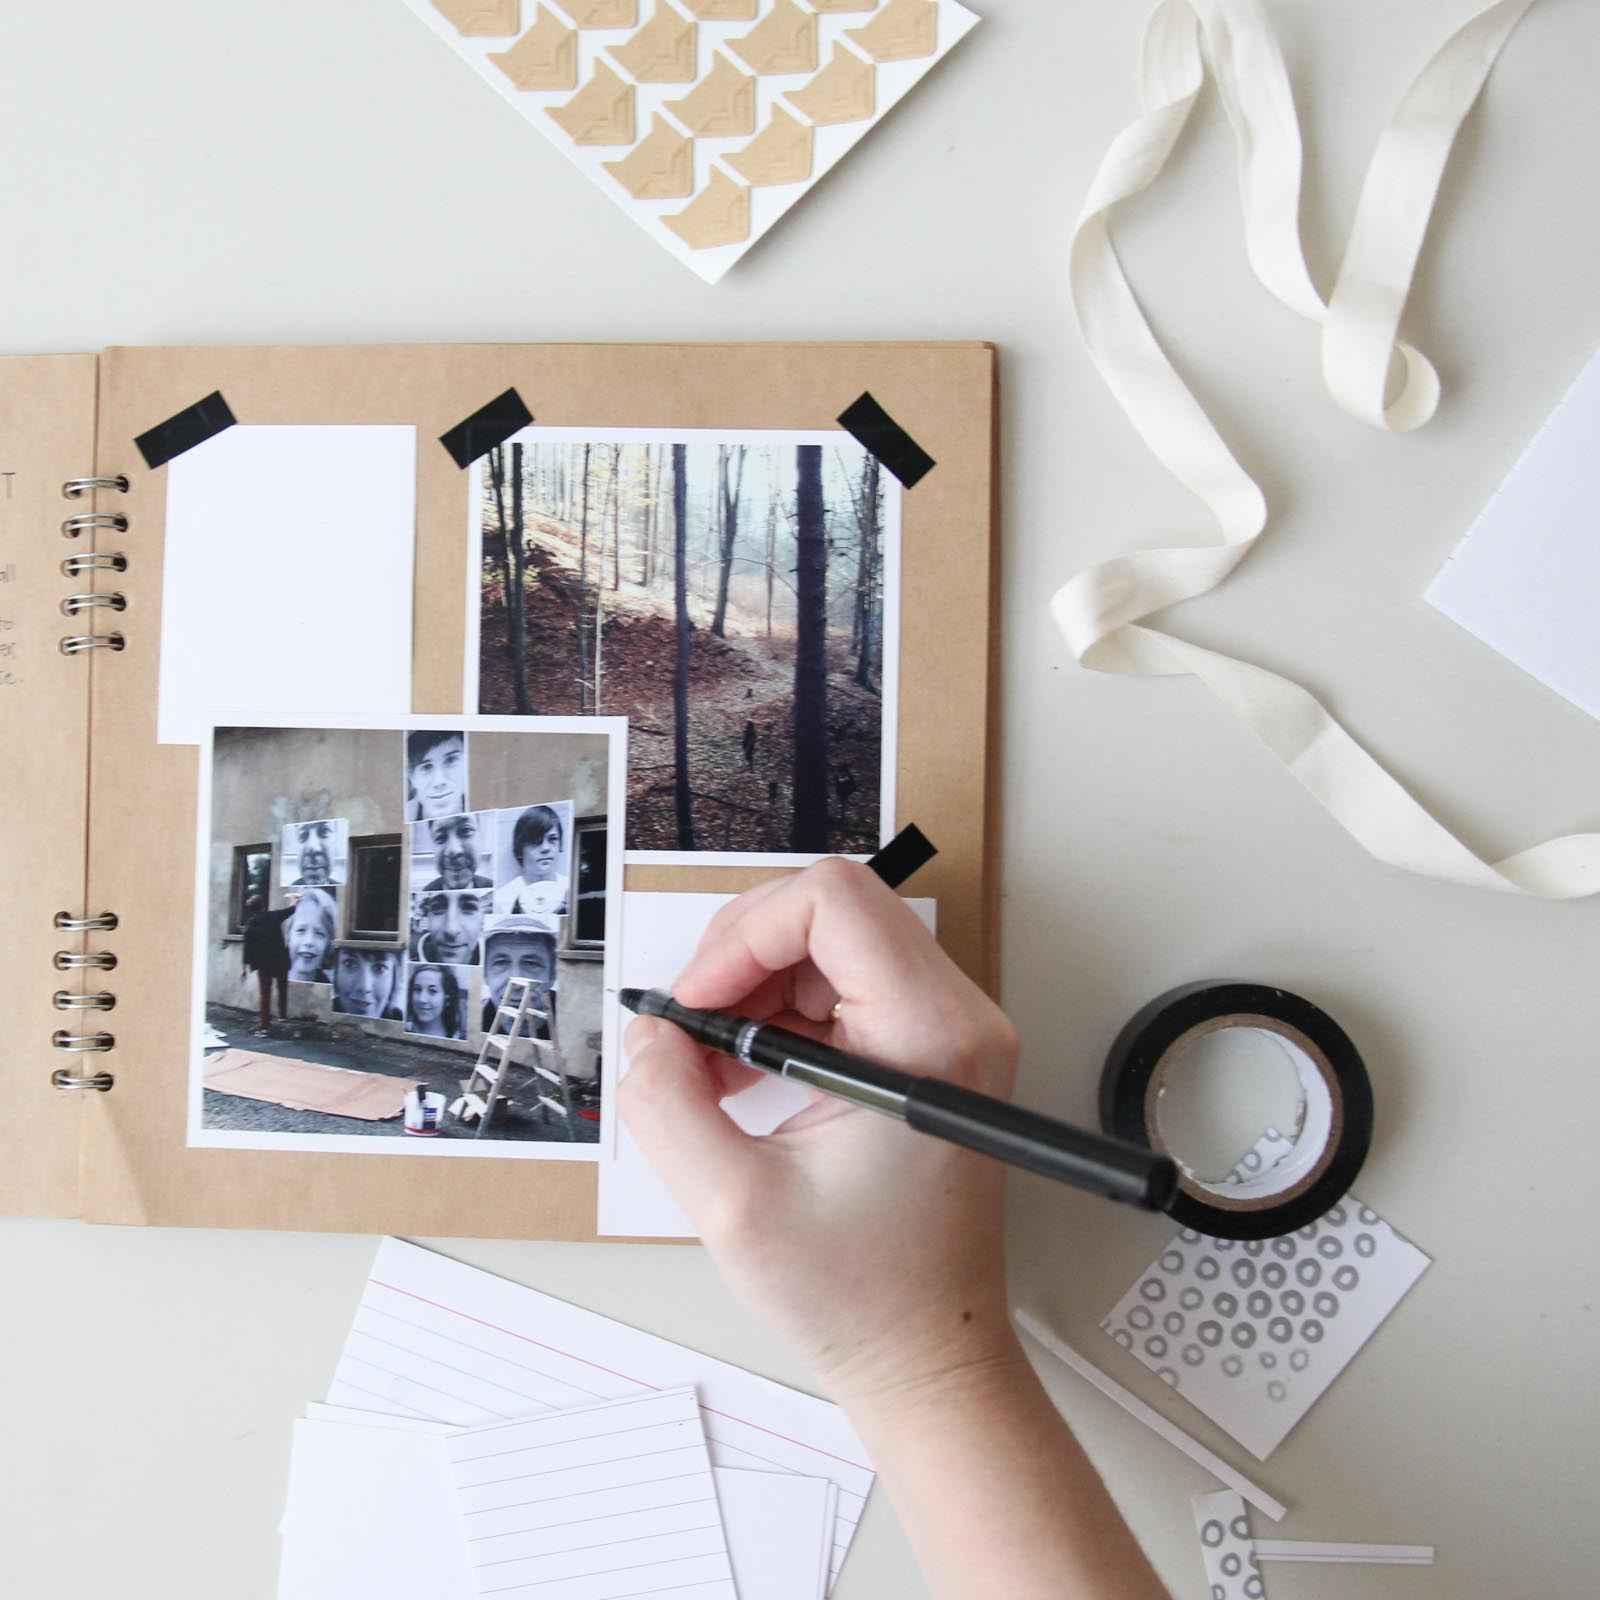 Scrapbooking-4.jpg10+ Tips to Scrapbook Like a Pro // Root & Branch Paper Co. Blog